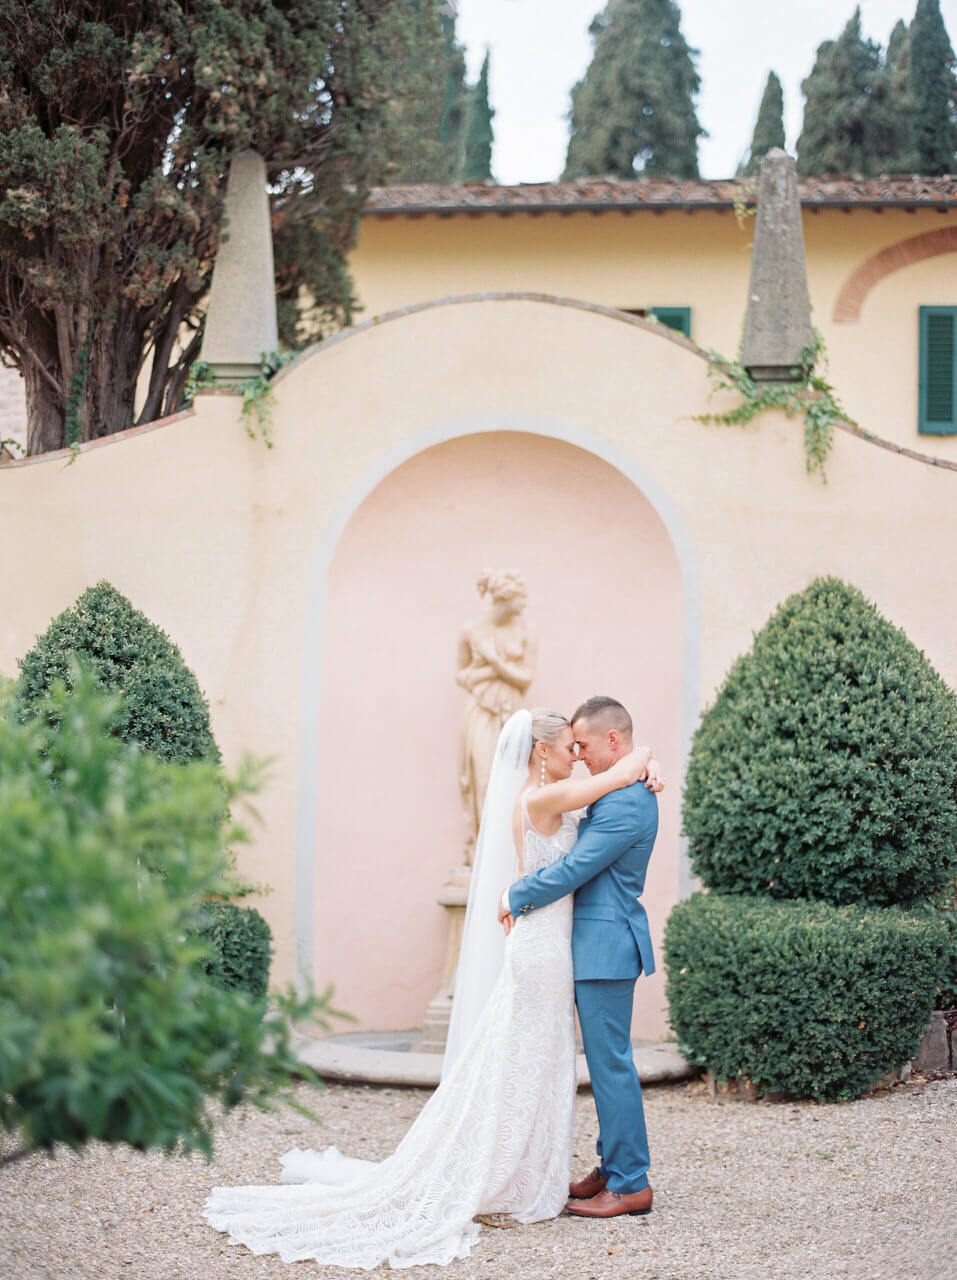 Just married first kiss in Florence - Villa agape